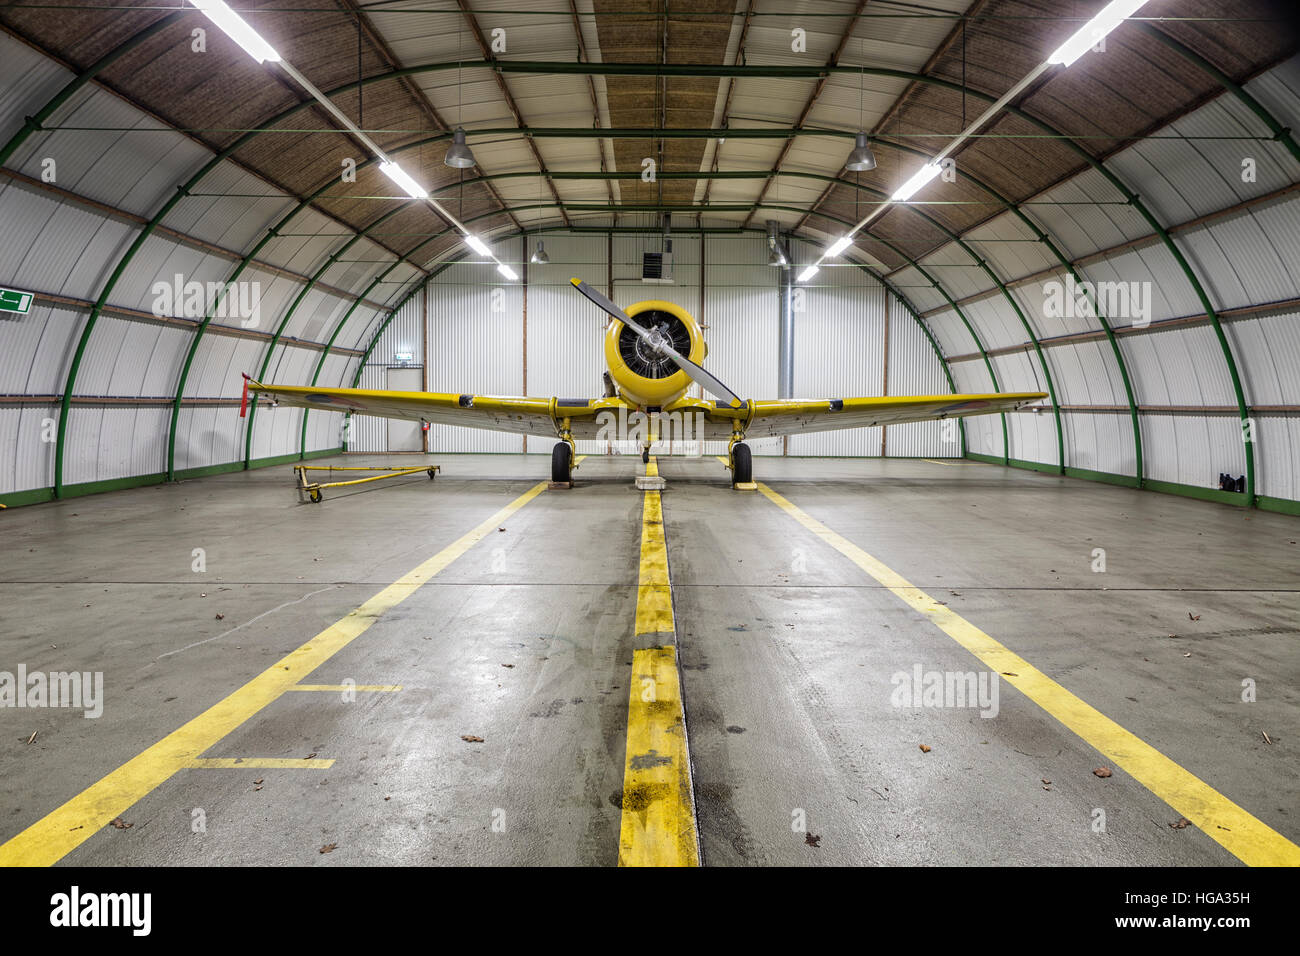 Vintage old yellow war plane inside of a clean empty hangar - Stock Image